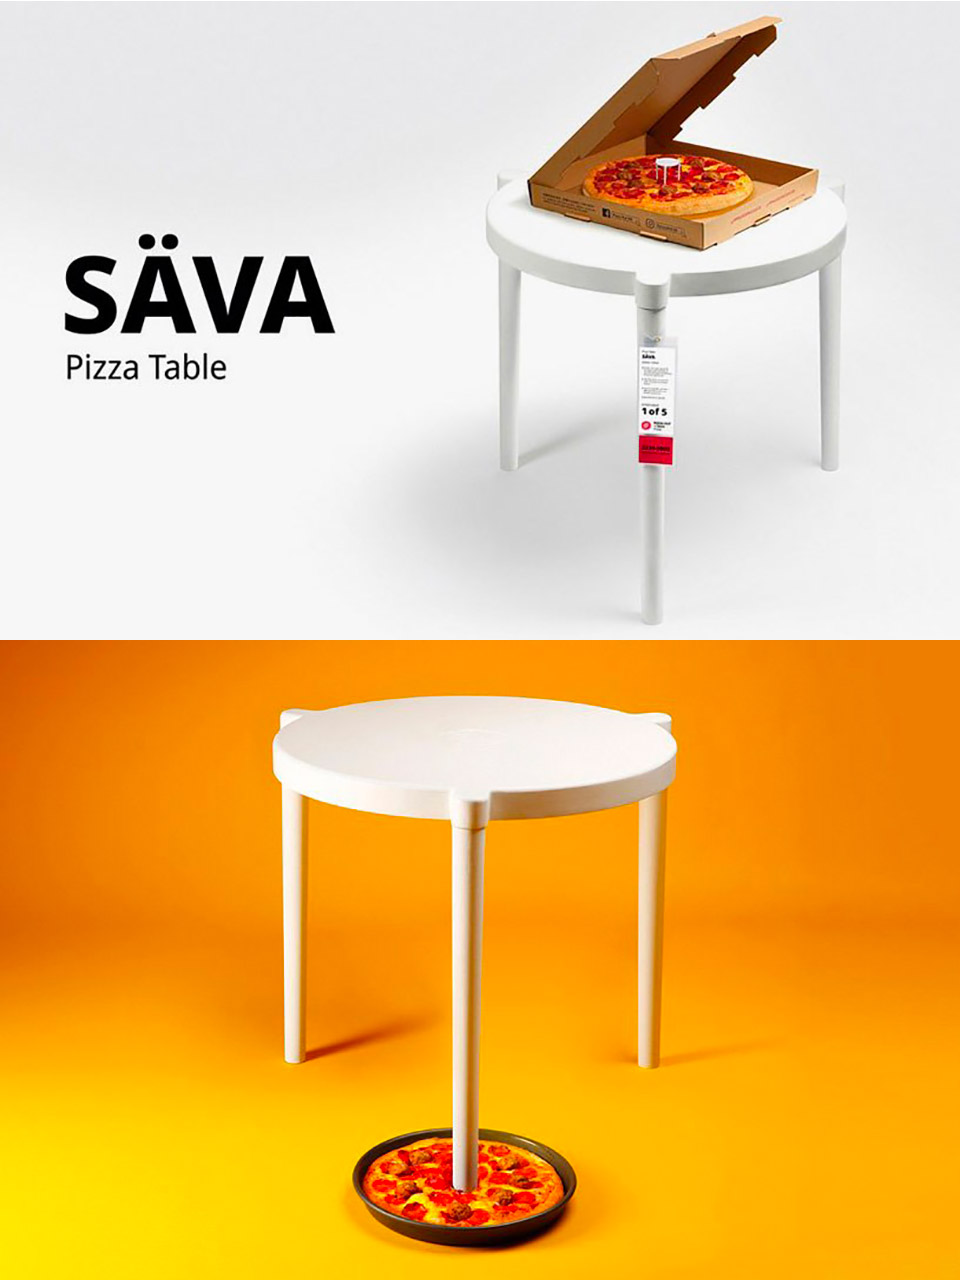 IKEA SAVA Pizza Table